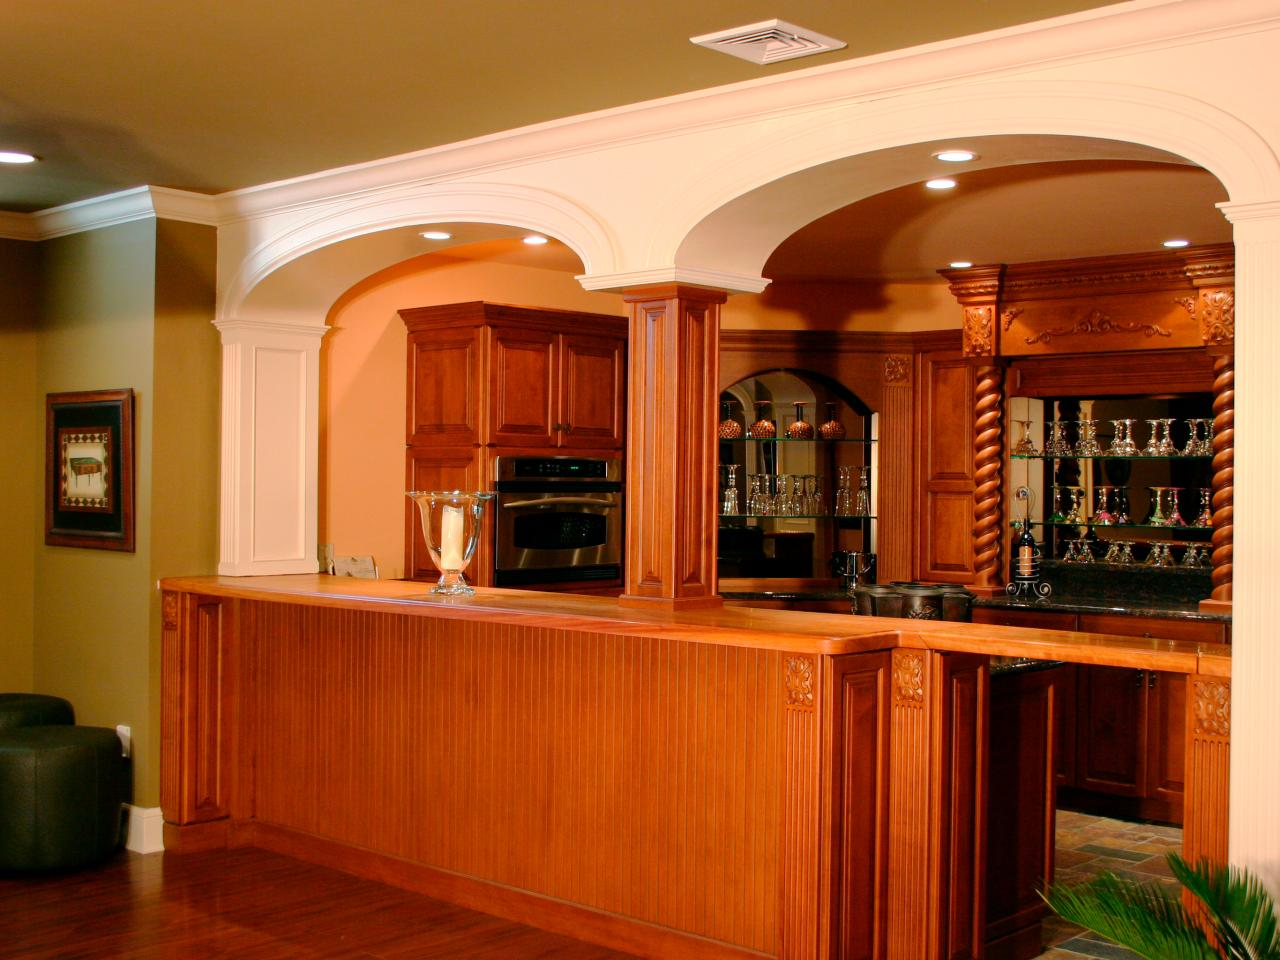 Finished Basement Bars Awesome Basement Bar Ideas And Designs Pictures Options & Tips  Hgtv Inspiration